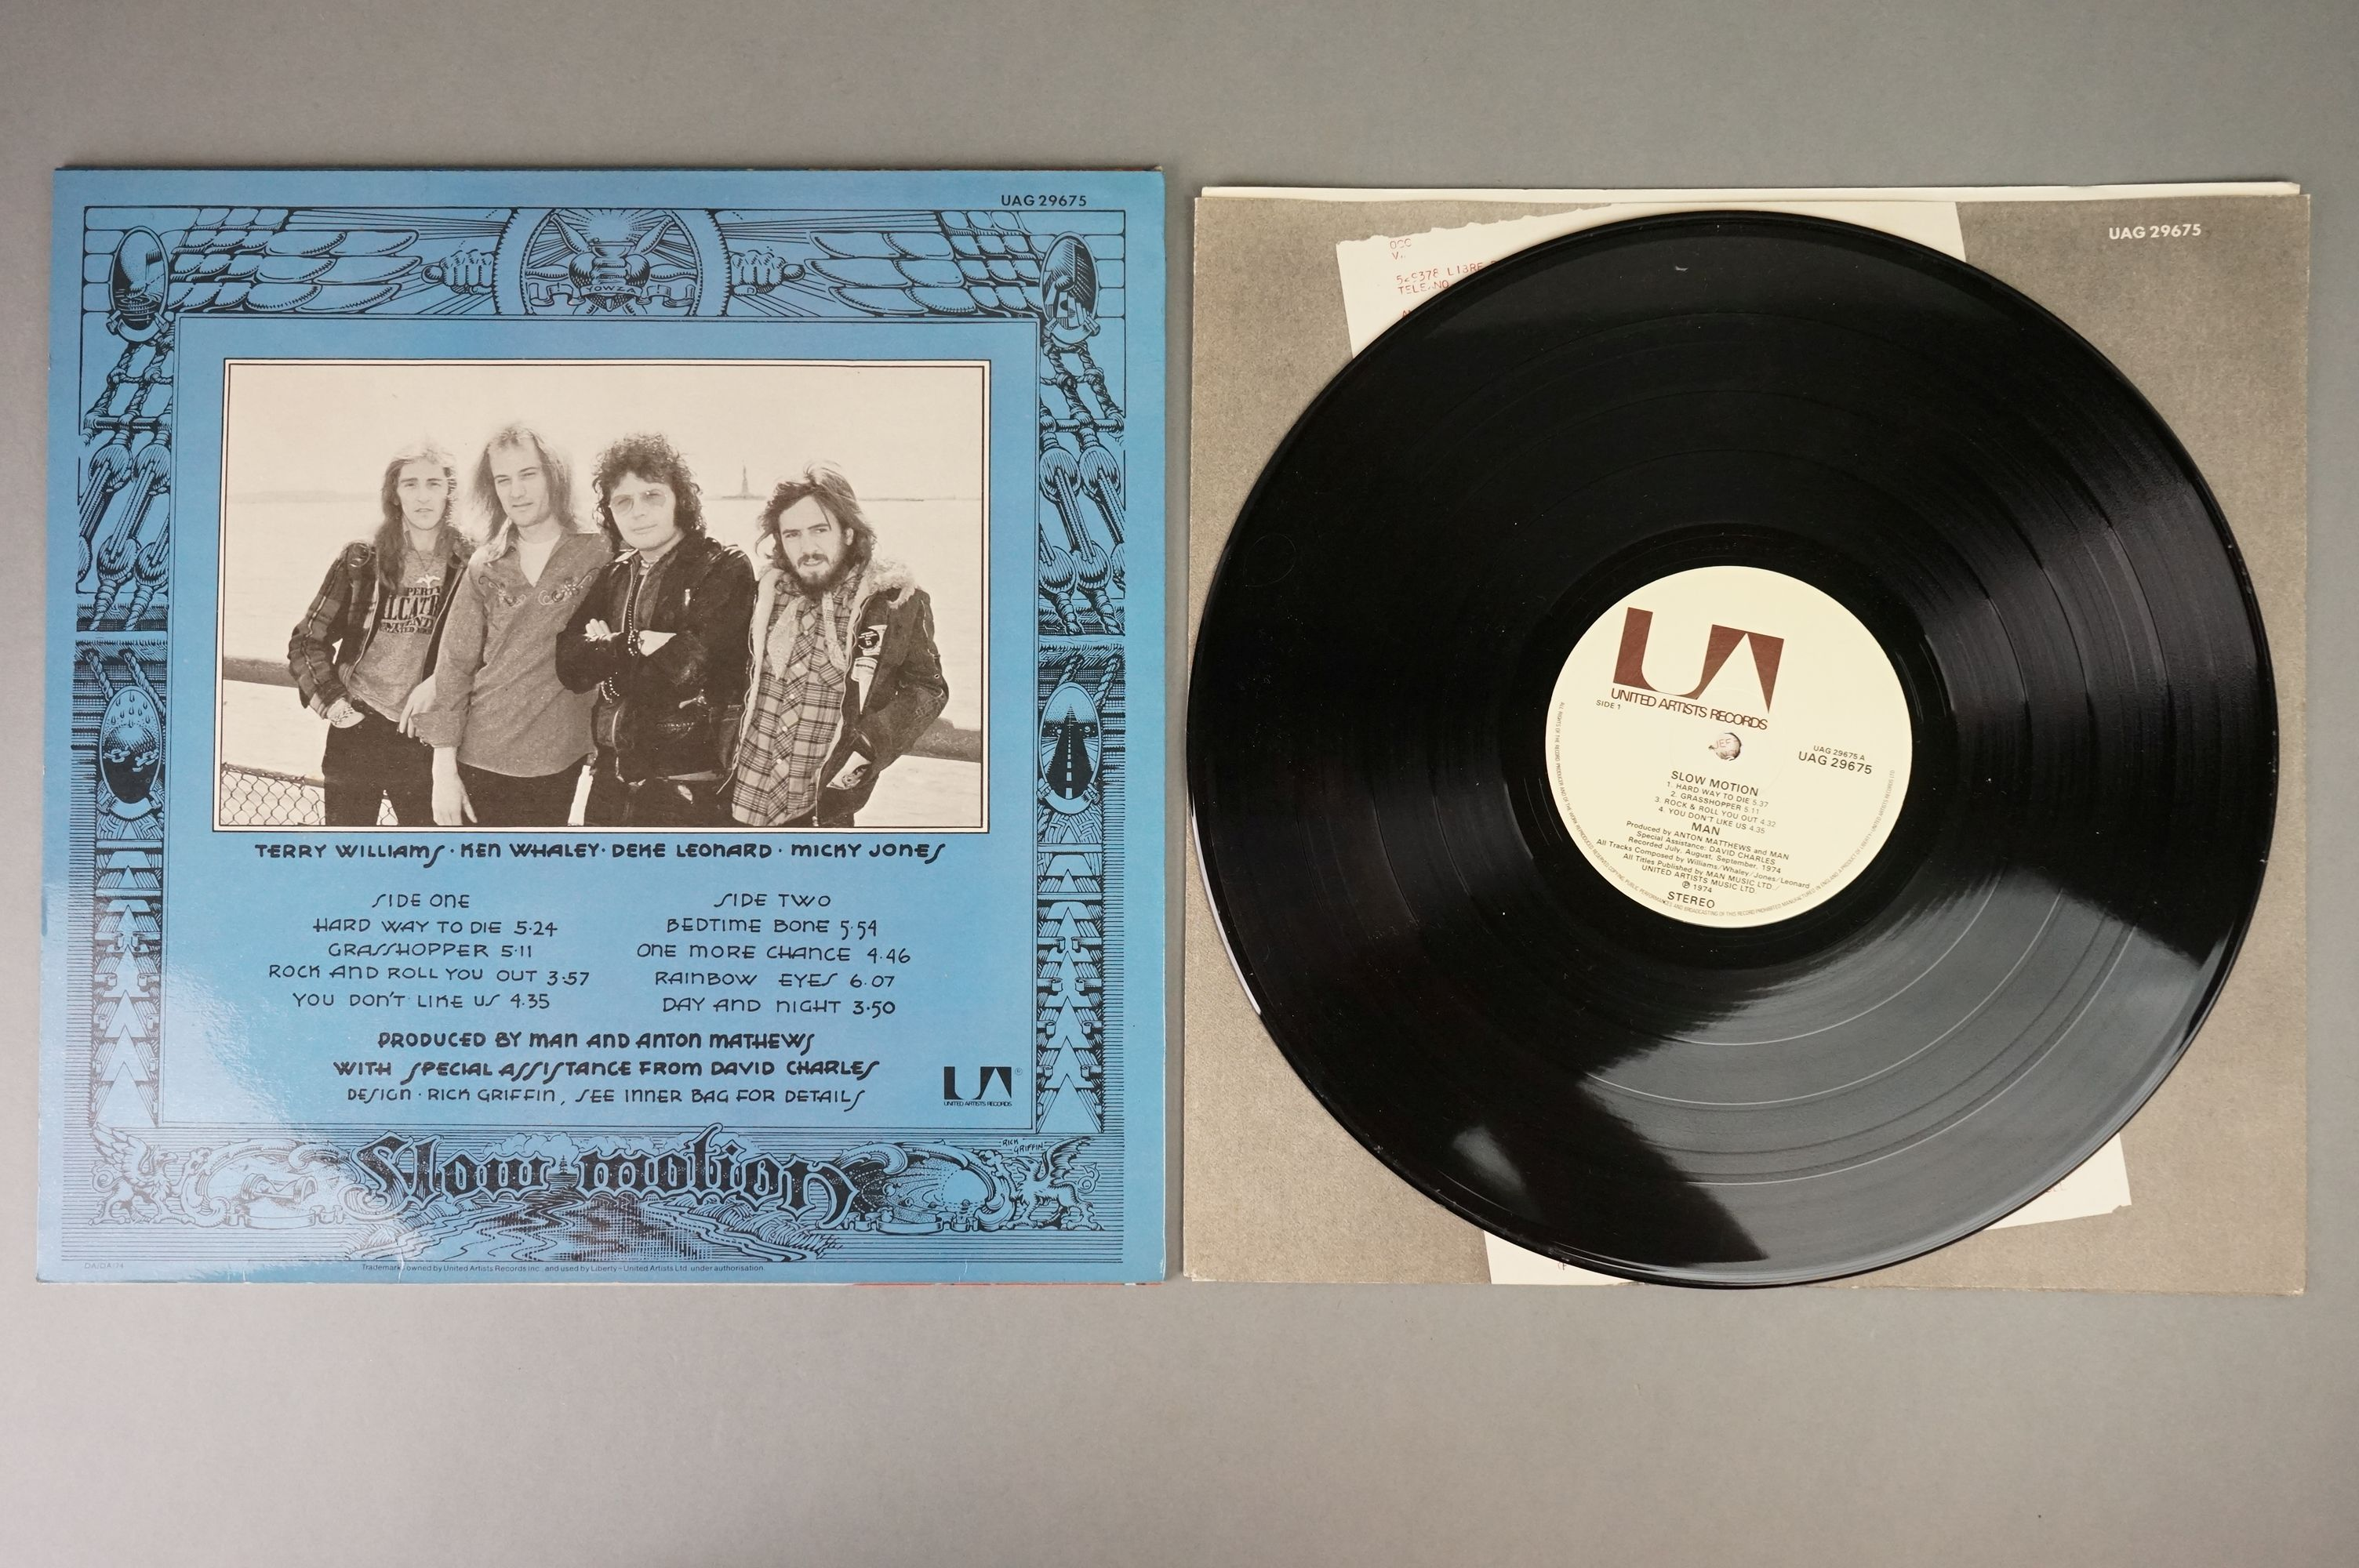 Vinyl - Man 2 LP's to include Slow Motion (UAG 29675) and Do You Like It Here (UAG 29236). Sleeves & - Image 6 of 7